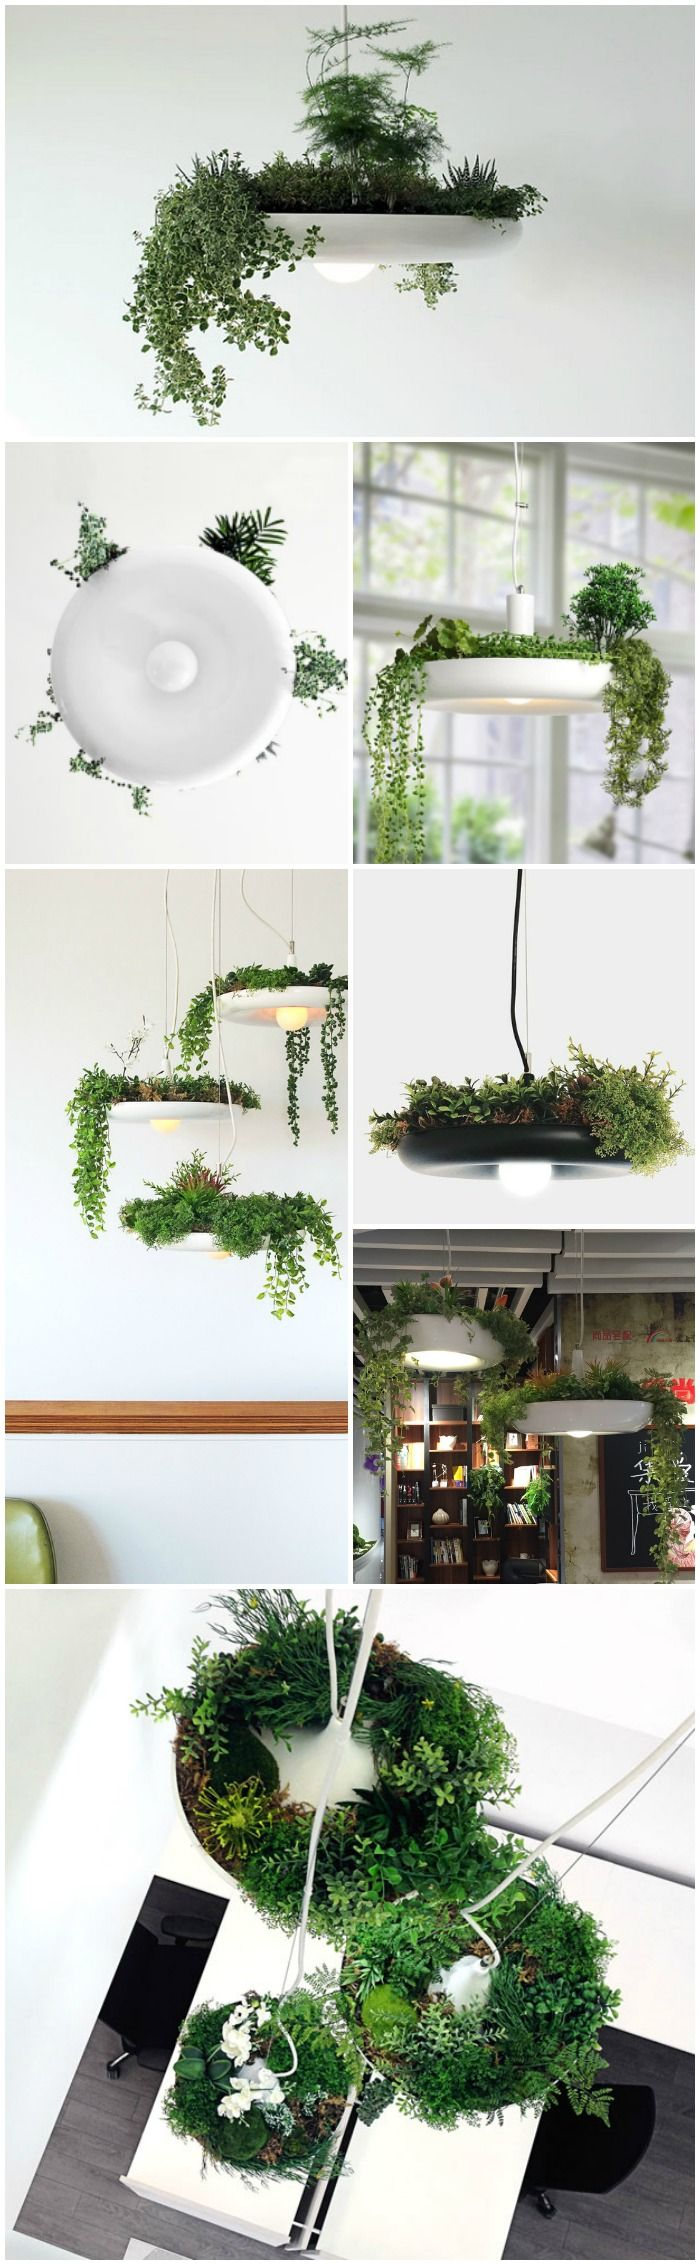 Babylon Lamp Brings Hanging Gardens Into Your Home